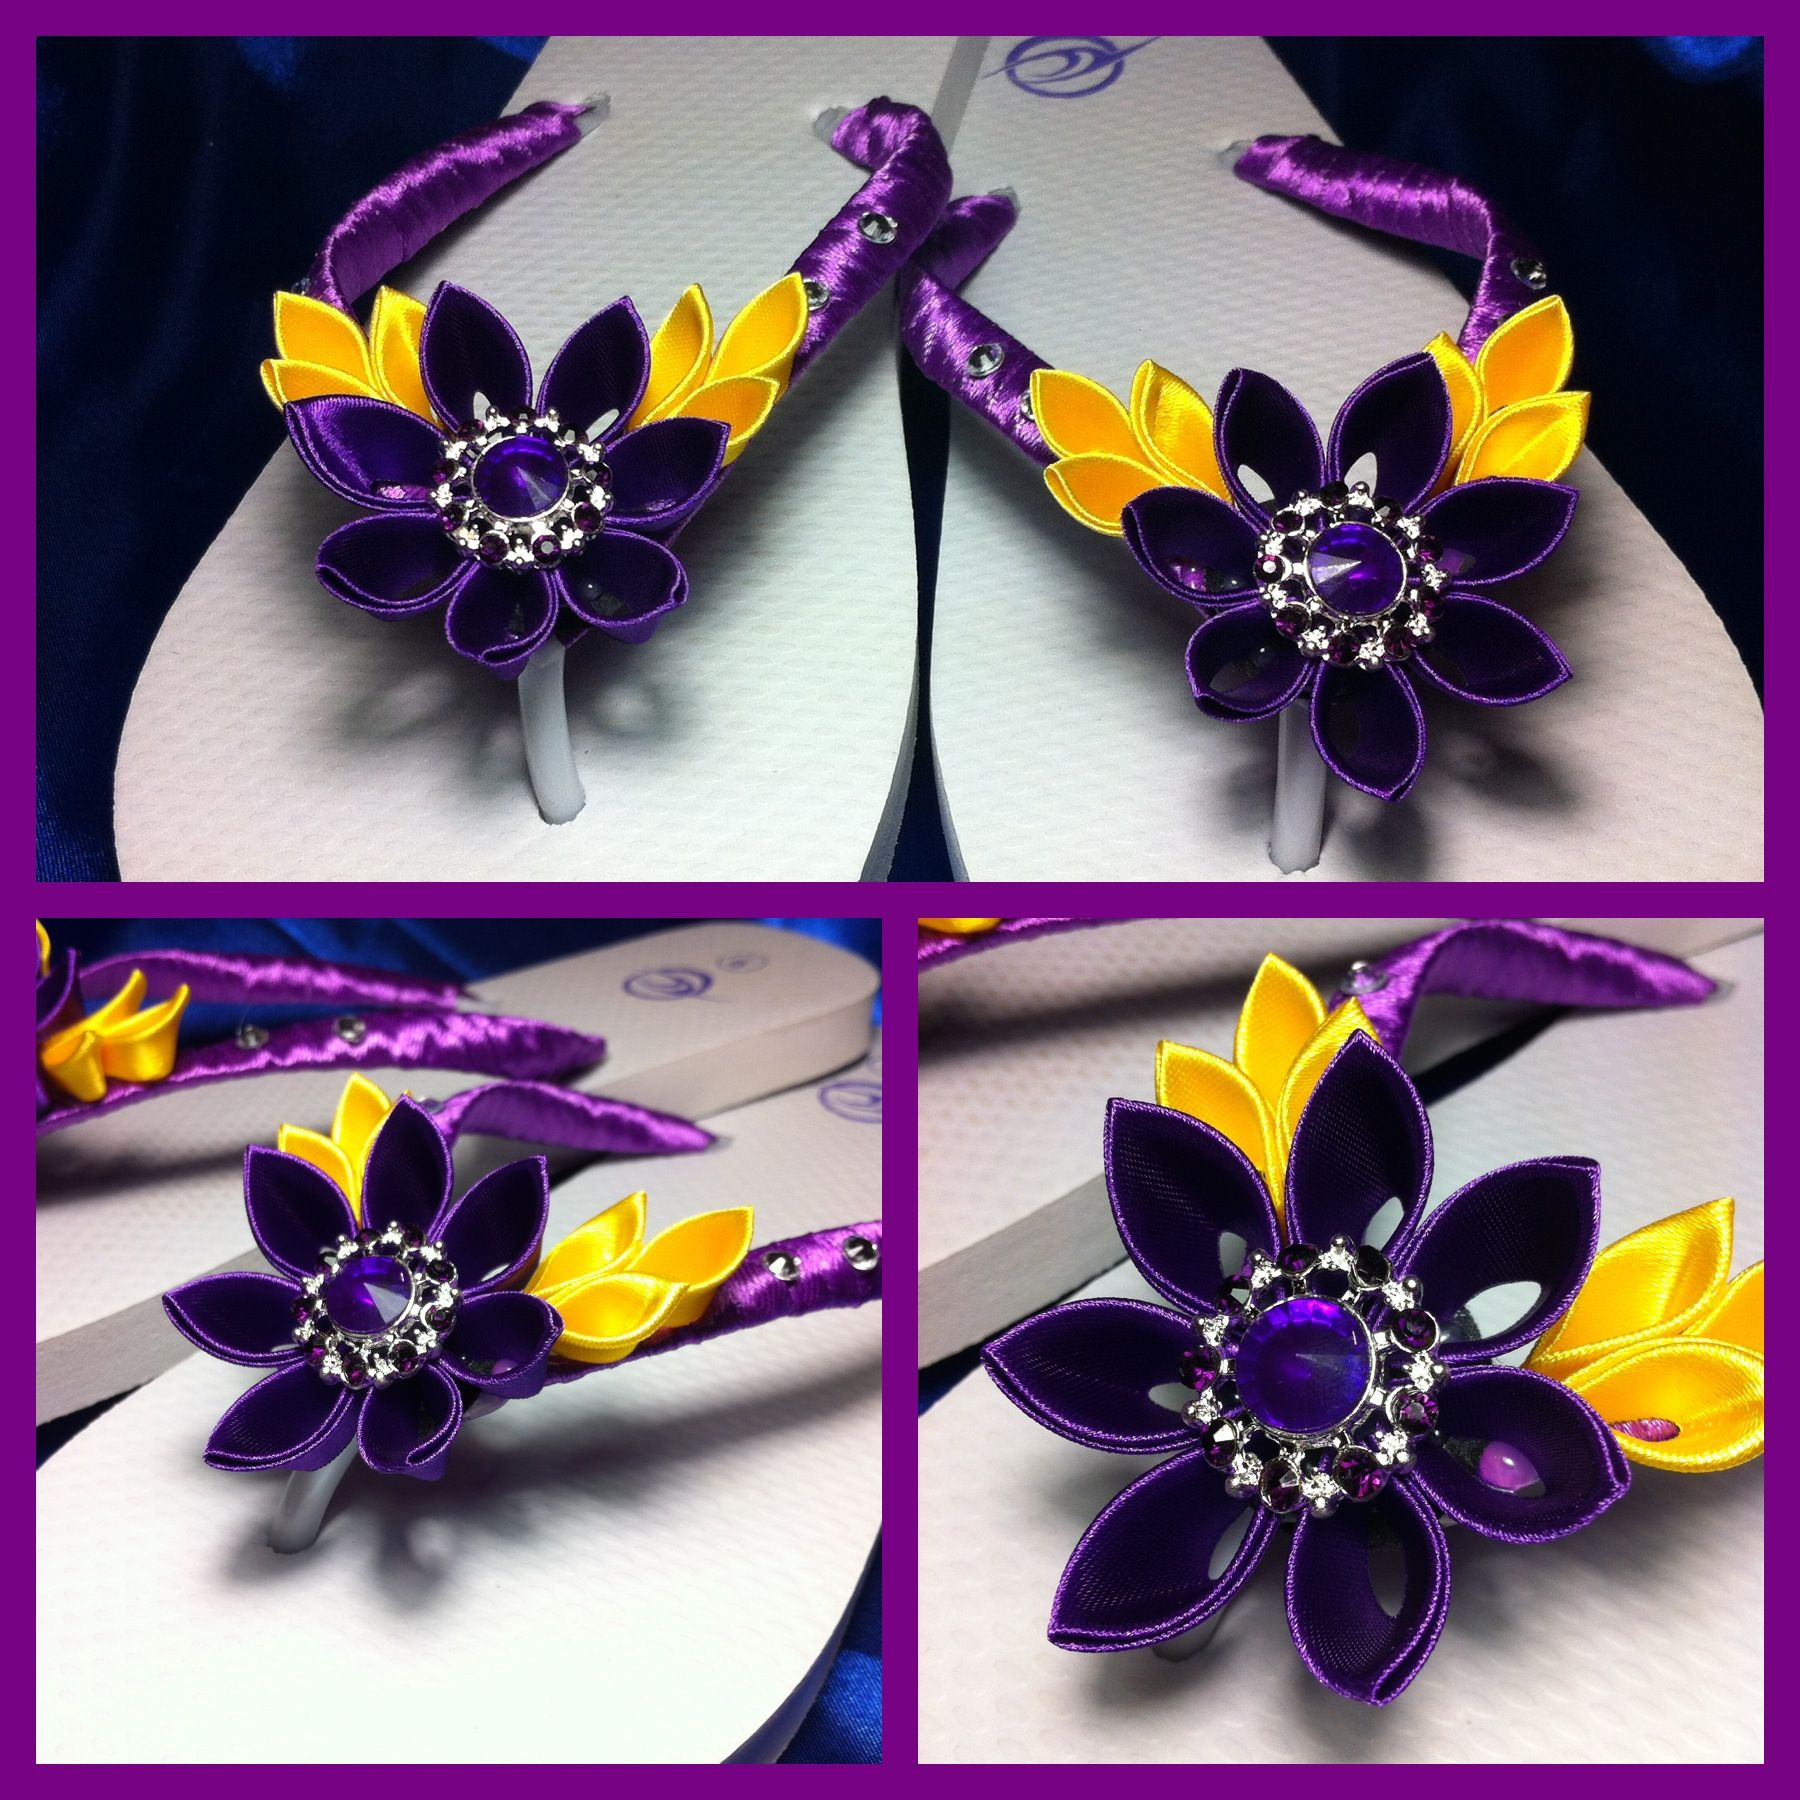 Kanzashi flowers purple and yellow satin ribbon on flip flops/thongs.